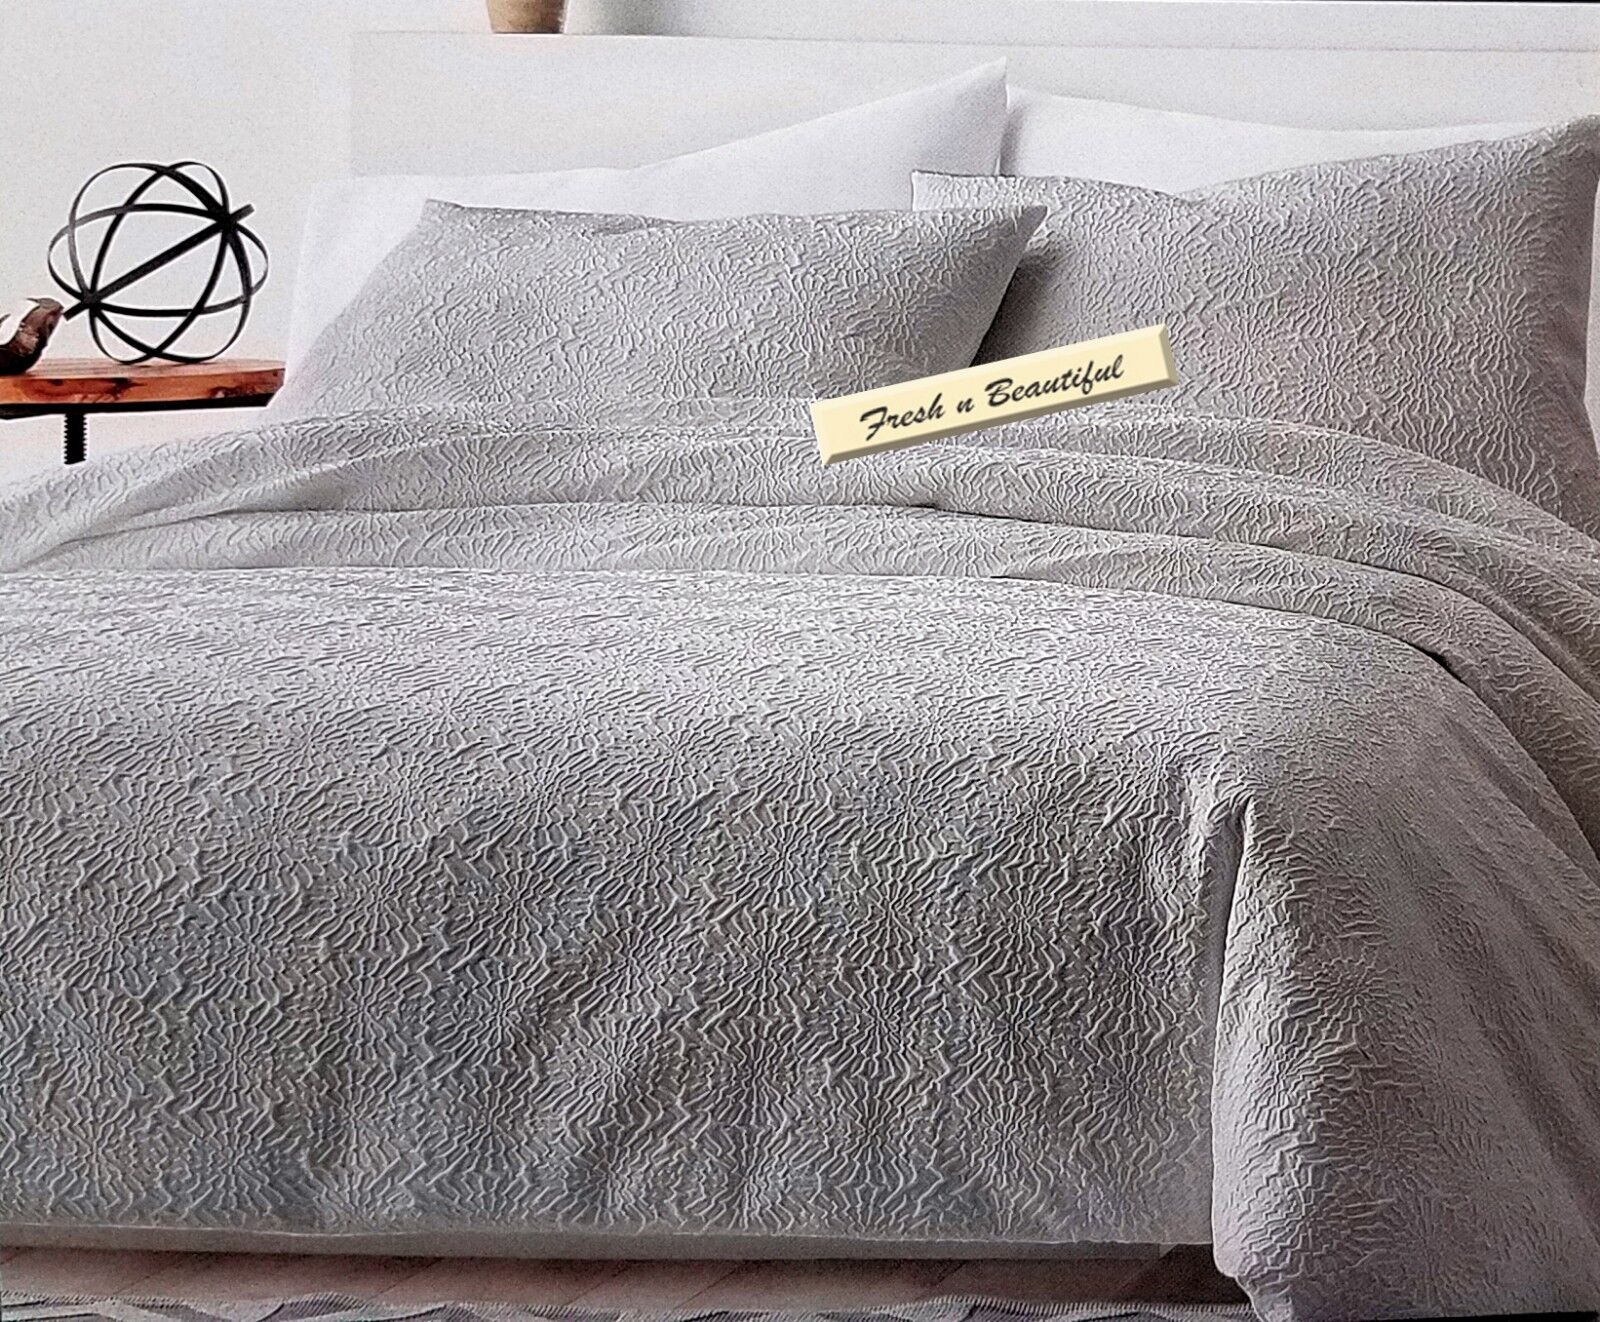 unison himmeli unisonhome shop style queen duvet or share the your upload look white matelasse cover